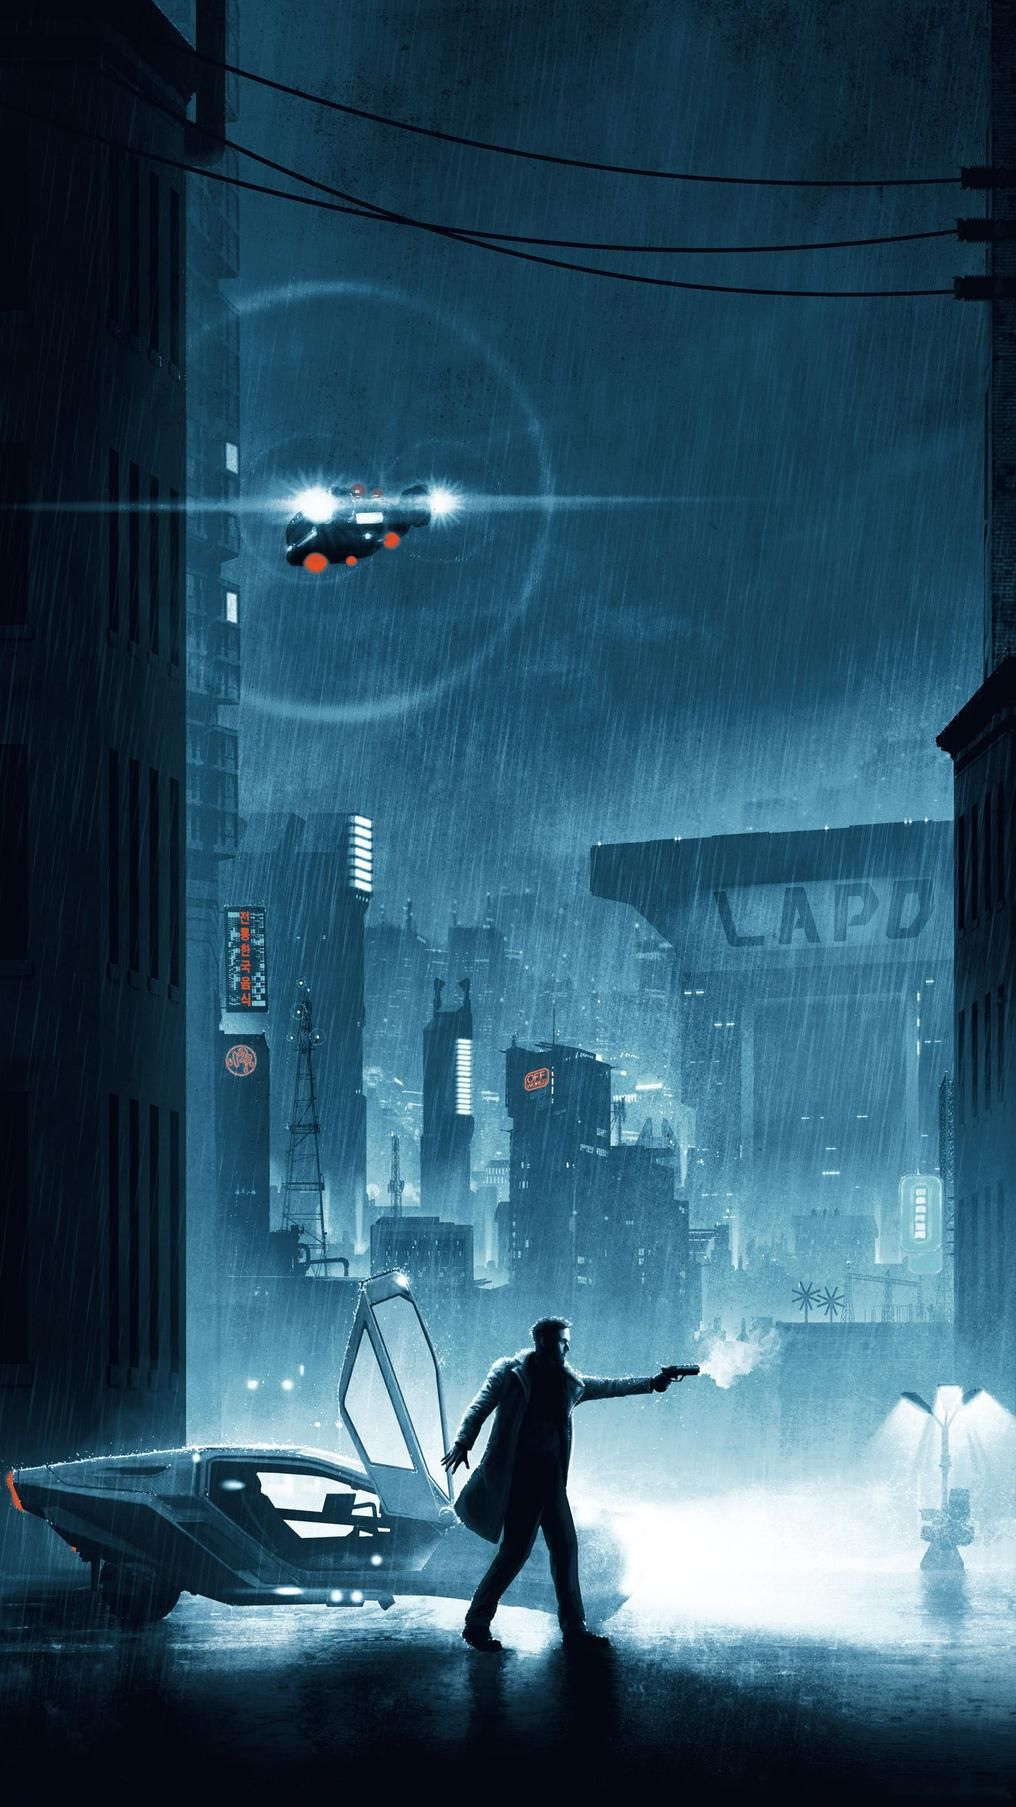 Blade Runner 2049 2017 Phone Wallpaper Blade Runner Wallpaper Blade Runner Blade Runner Art